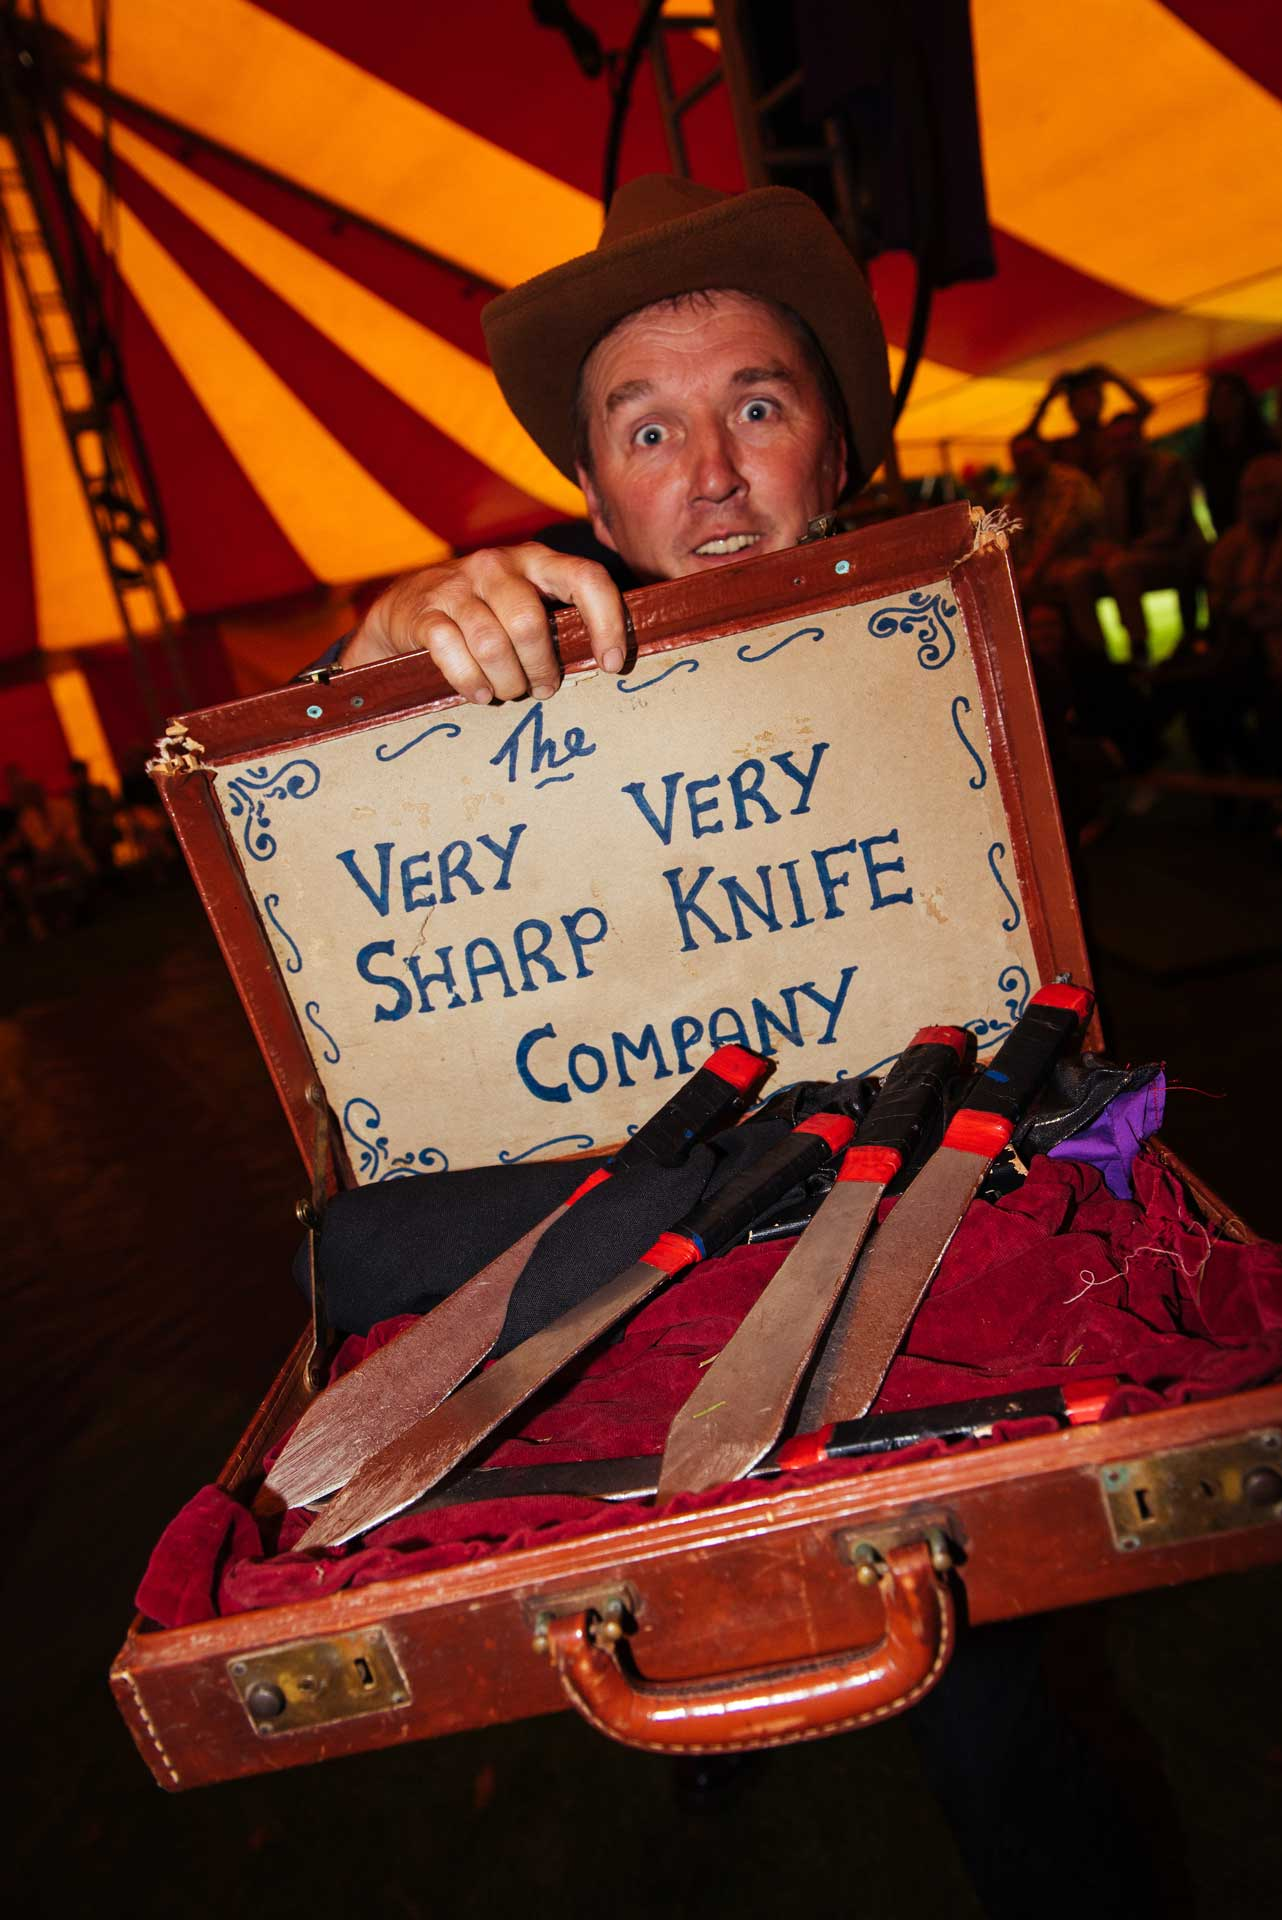 hire a comedy knife thrower as part of the circus show at your event in the uk